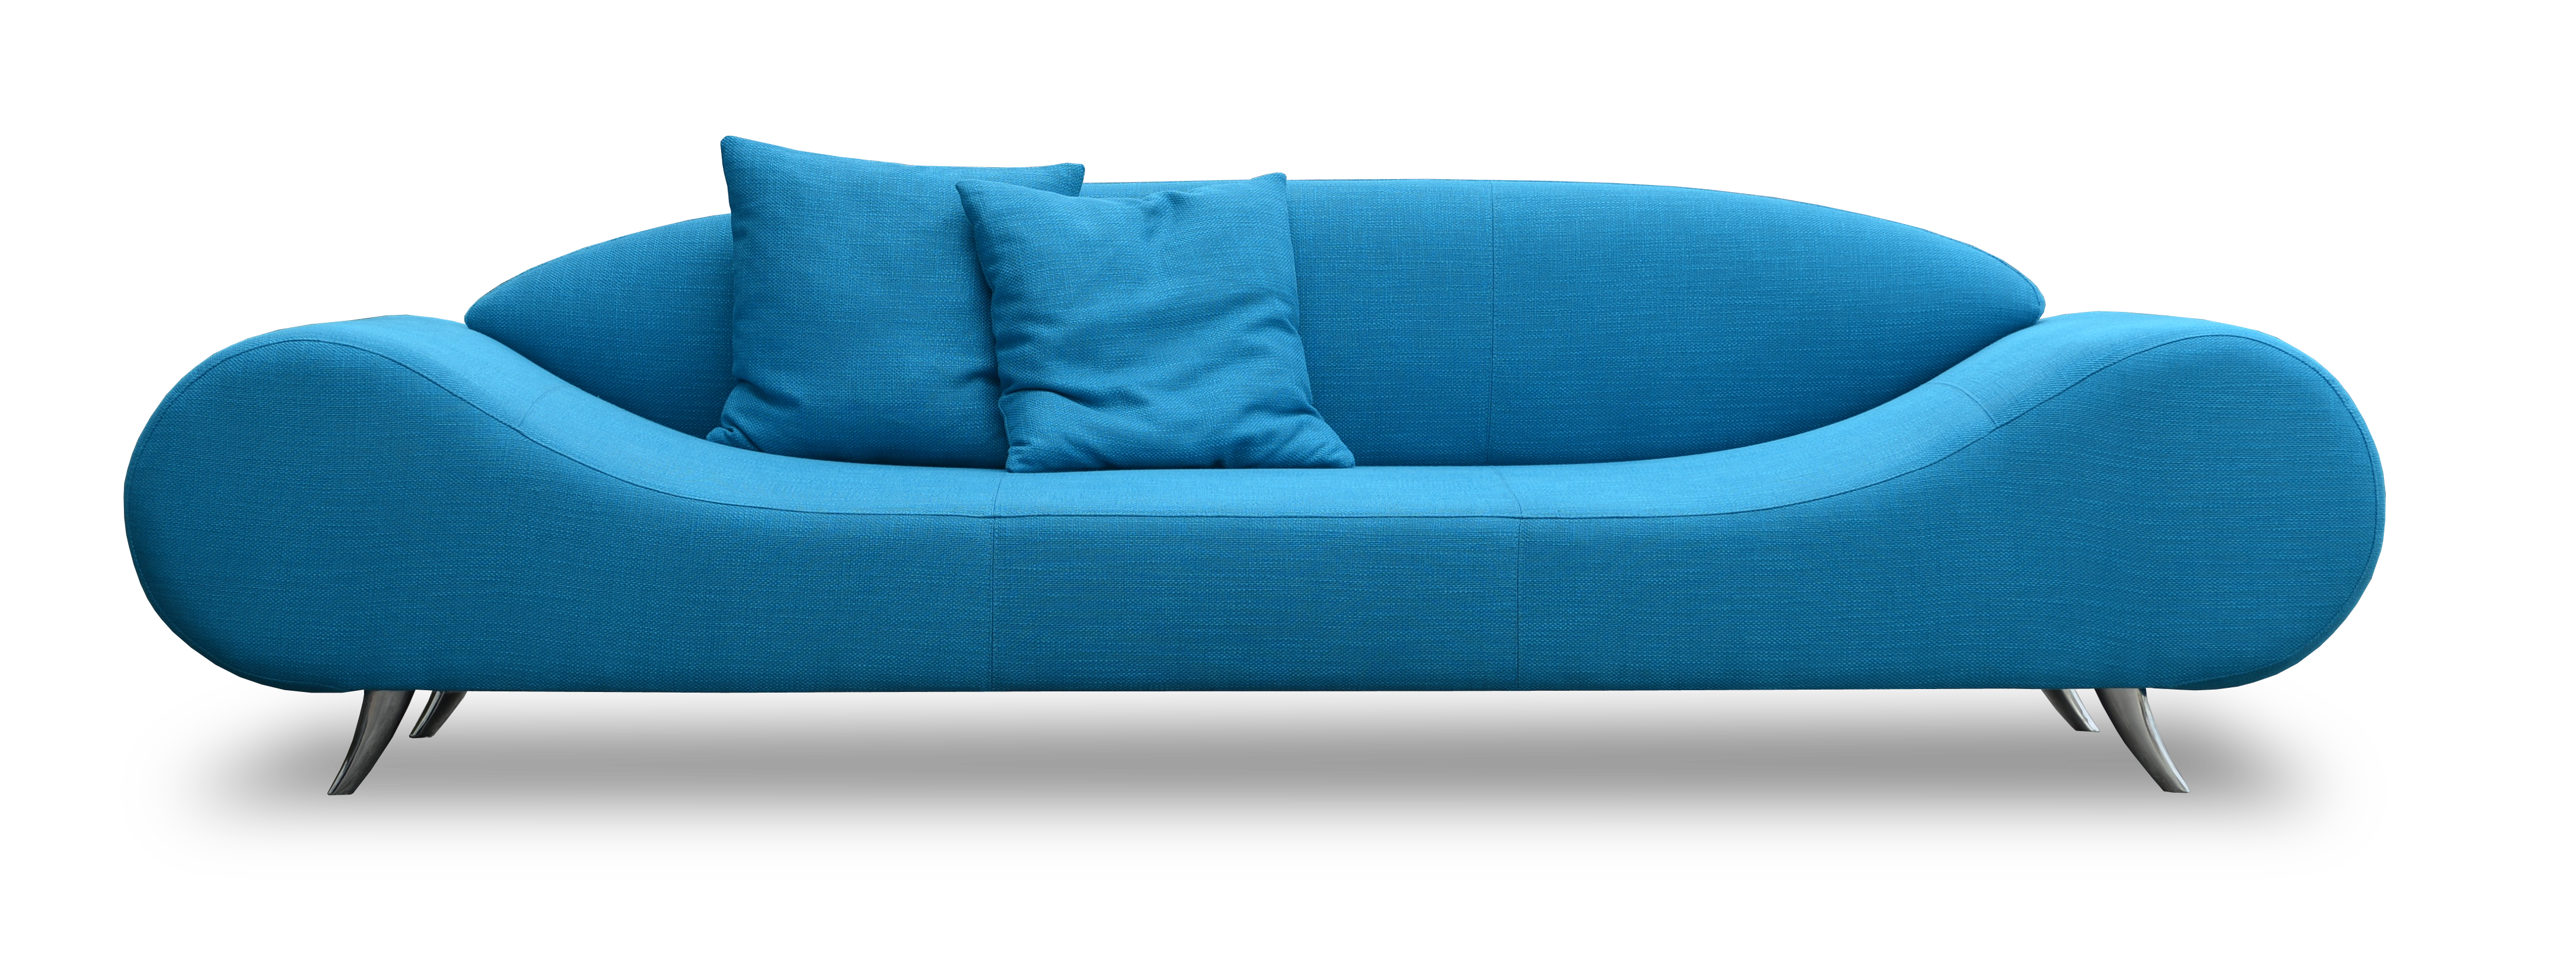 blue leather chair harmony sofa fabric turquoise